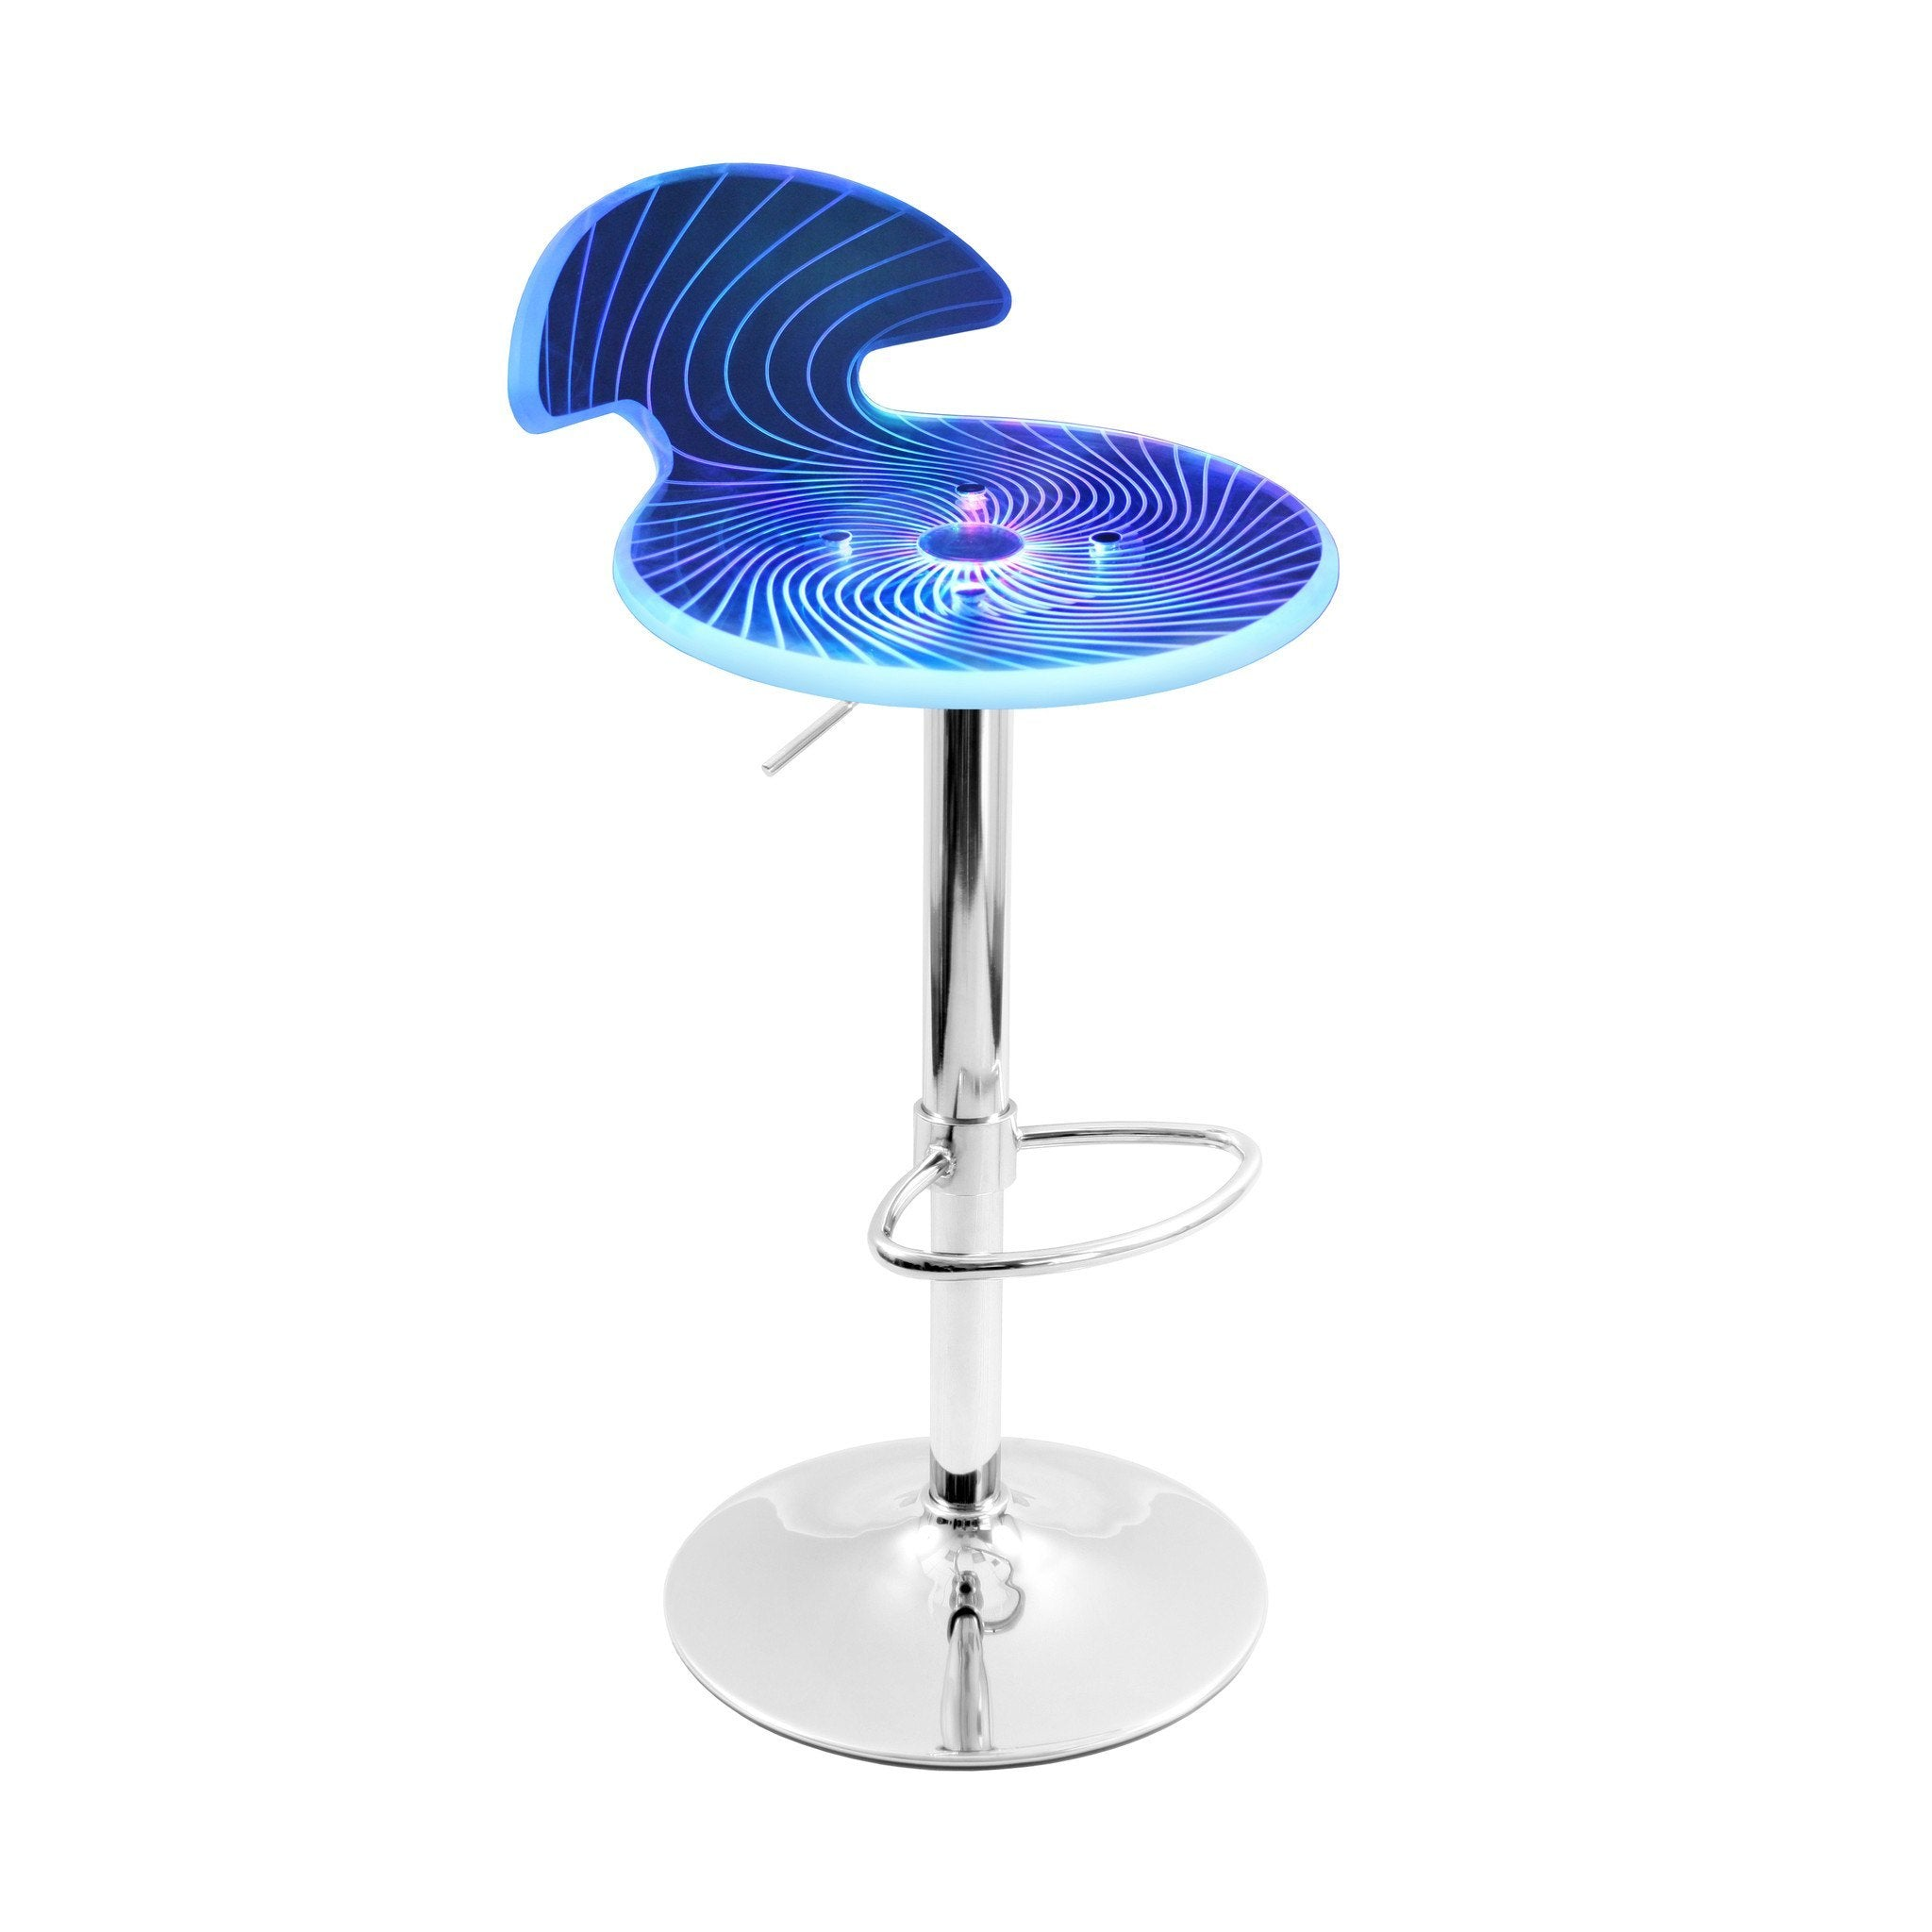 furniture fortytwo blue stool cor stools home don d bar